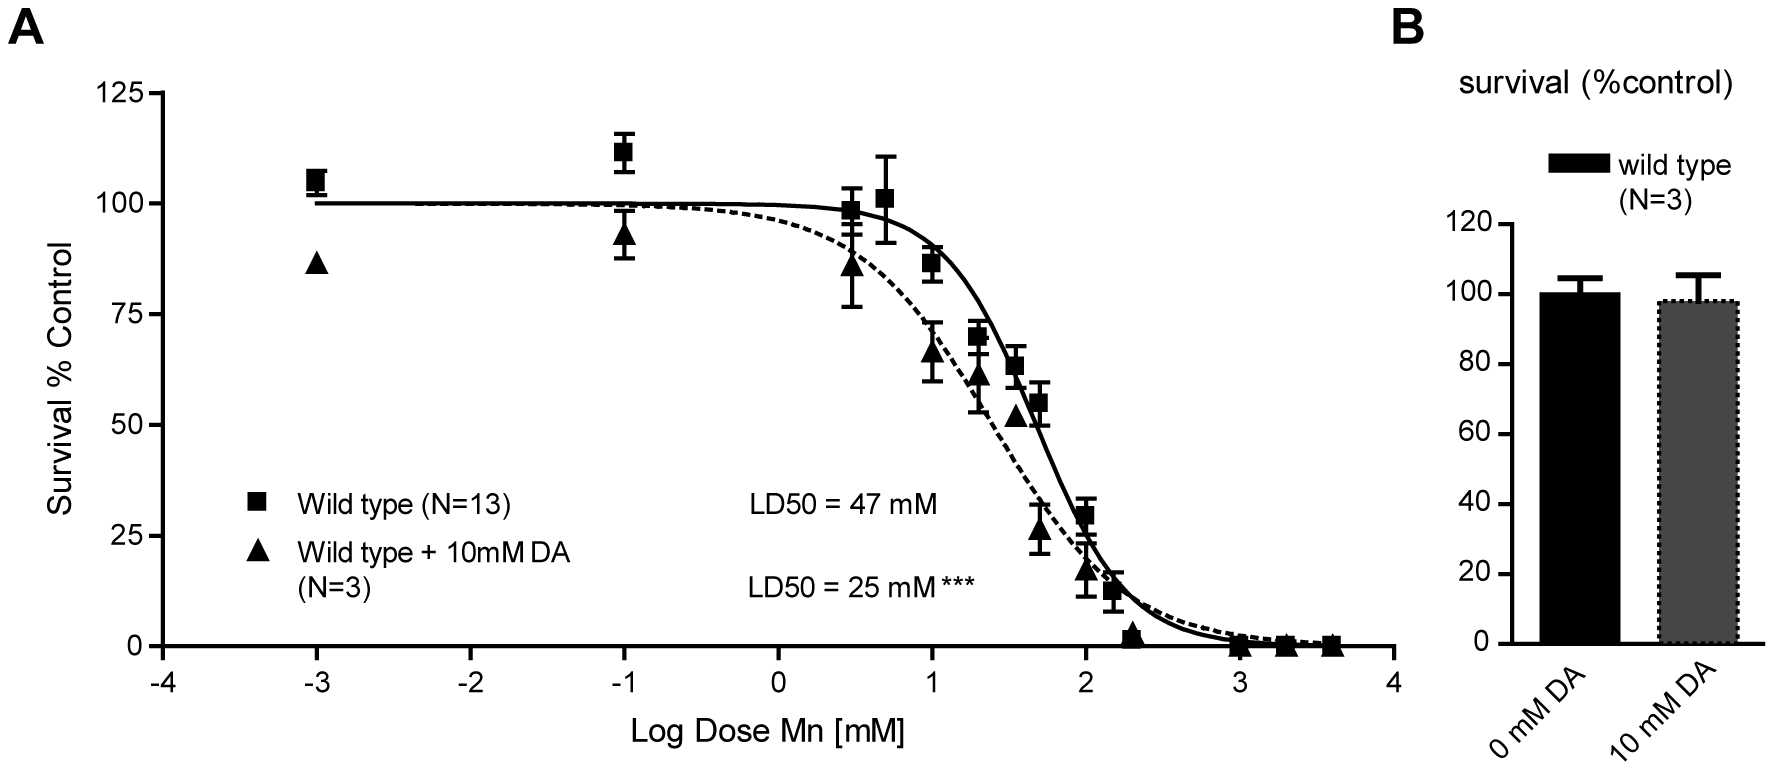 Sub-lethal dopamine pre-treatment sensitizes wild-type worms to Mn exposure.